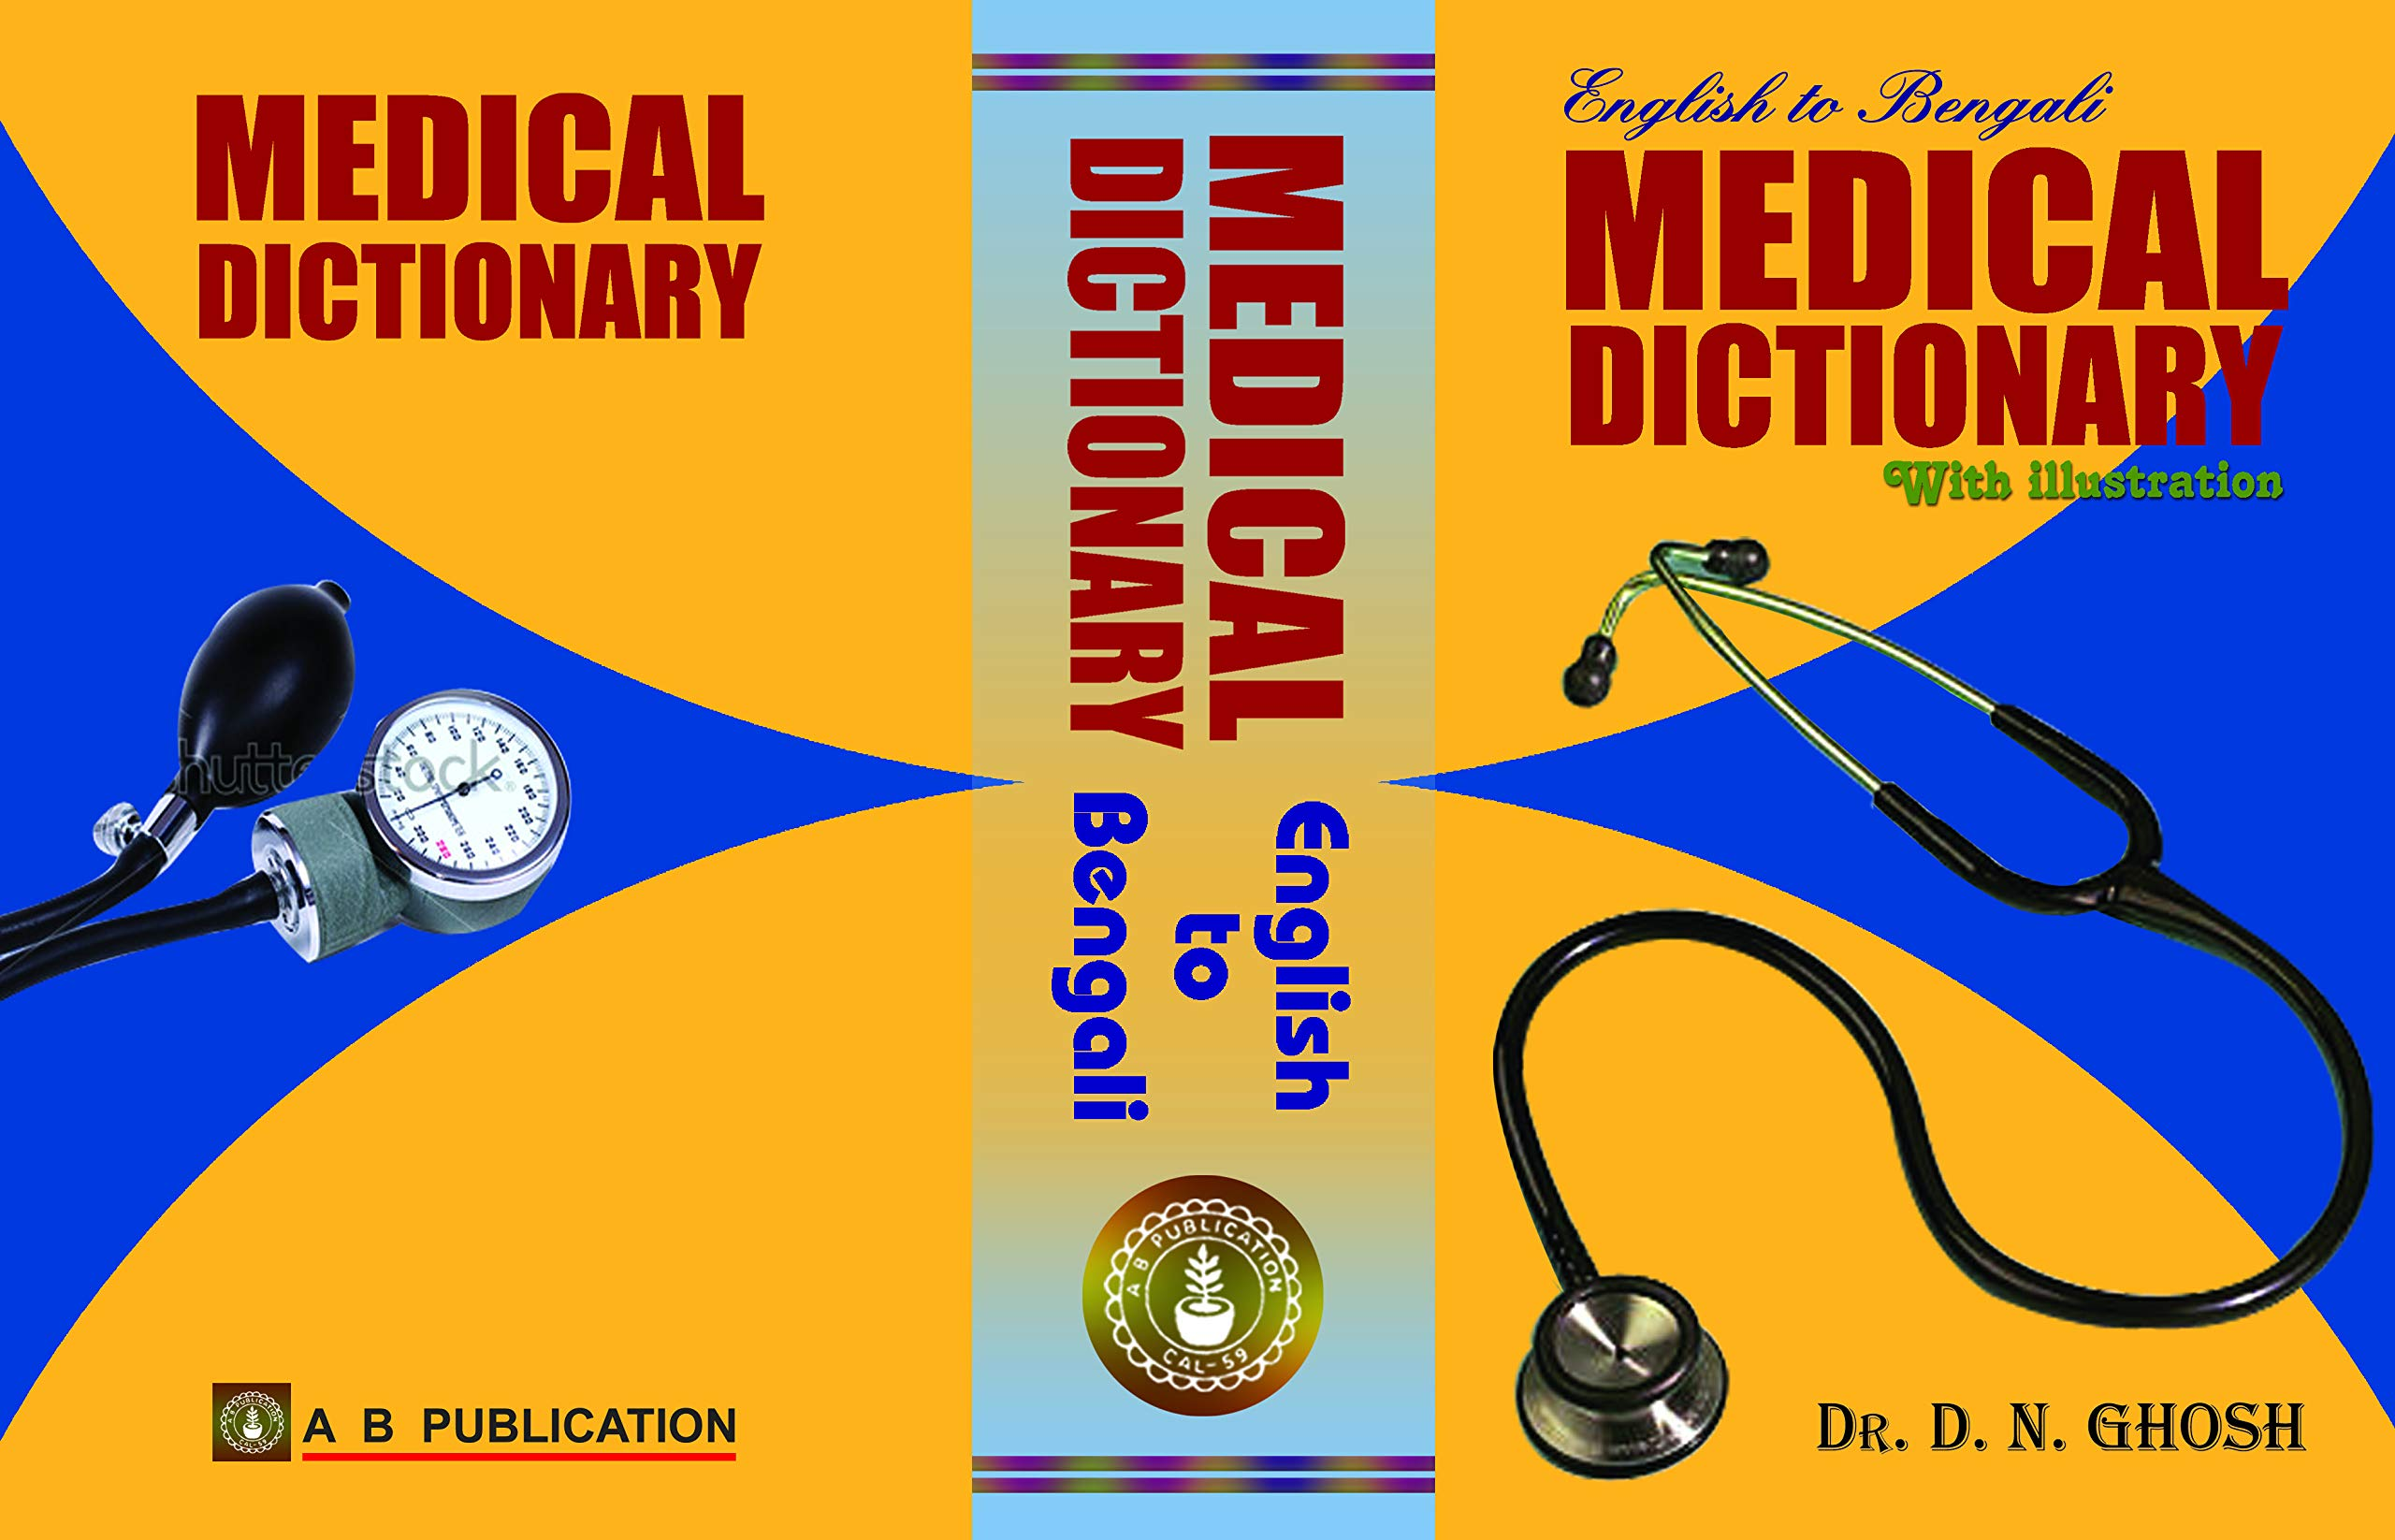 Buy English to Bengali Medical Dictionary With Illustration Book